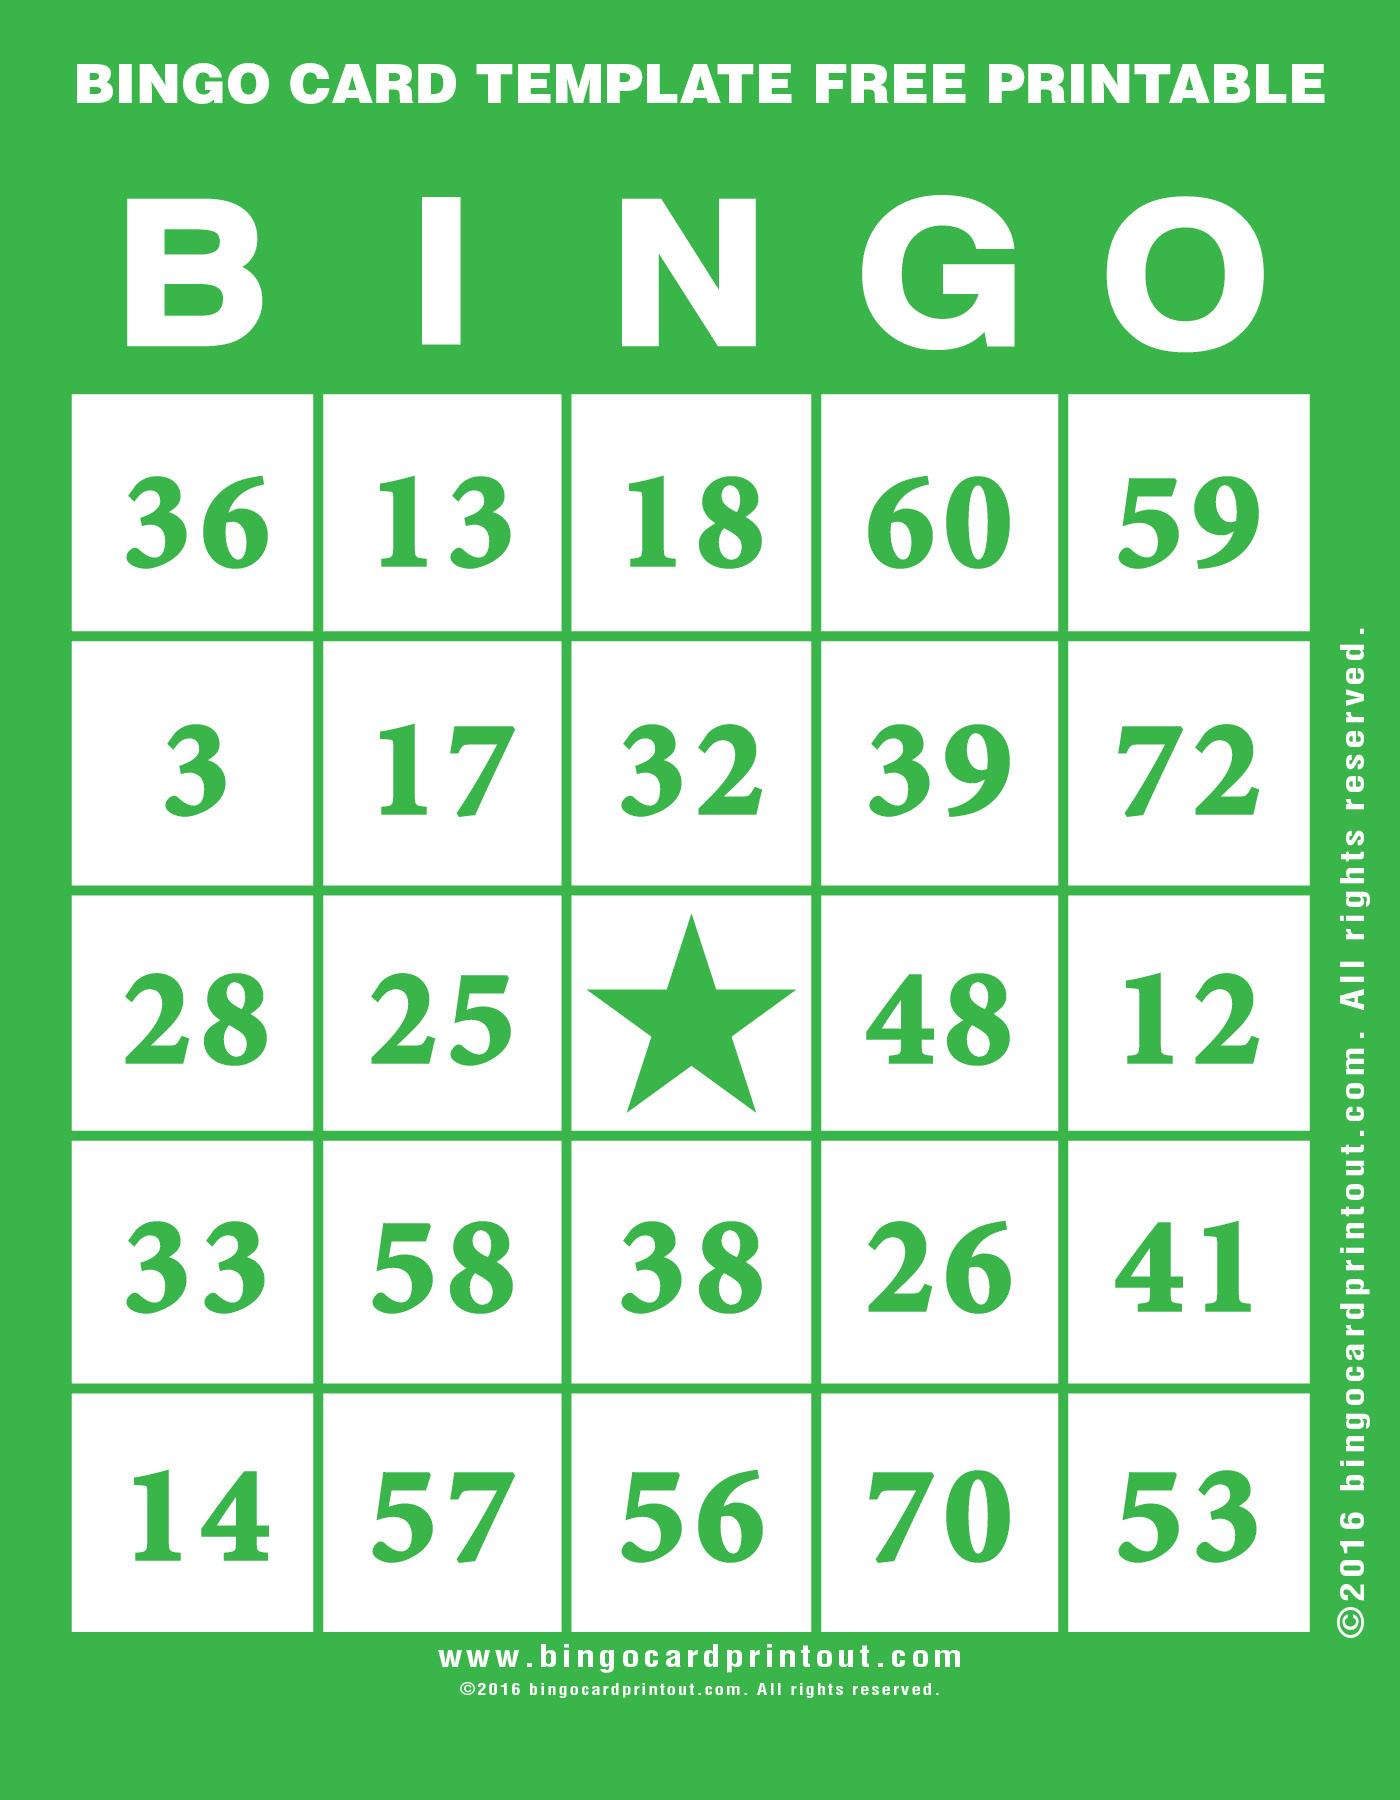 Bingo Card Template Free Printable 4